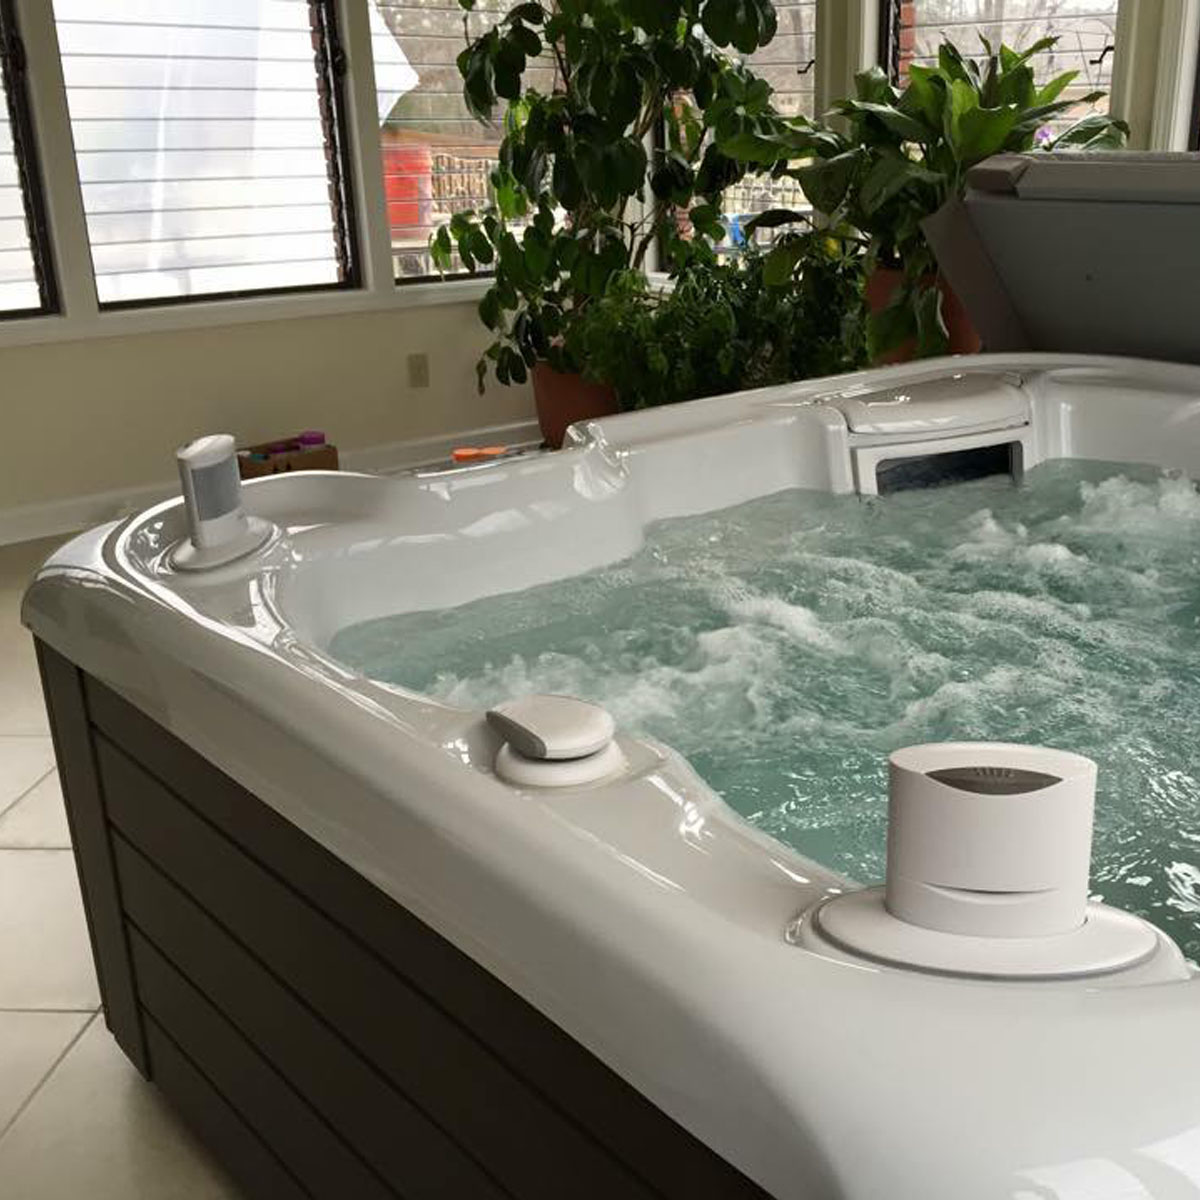 Apartment Condo Dwellers 5 Way To Relax Big When You Live Small Olympic Hot Tub